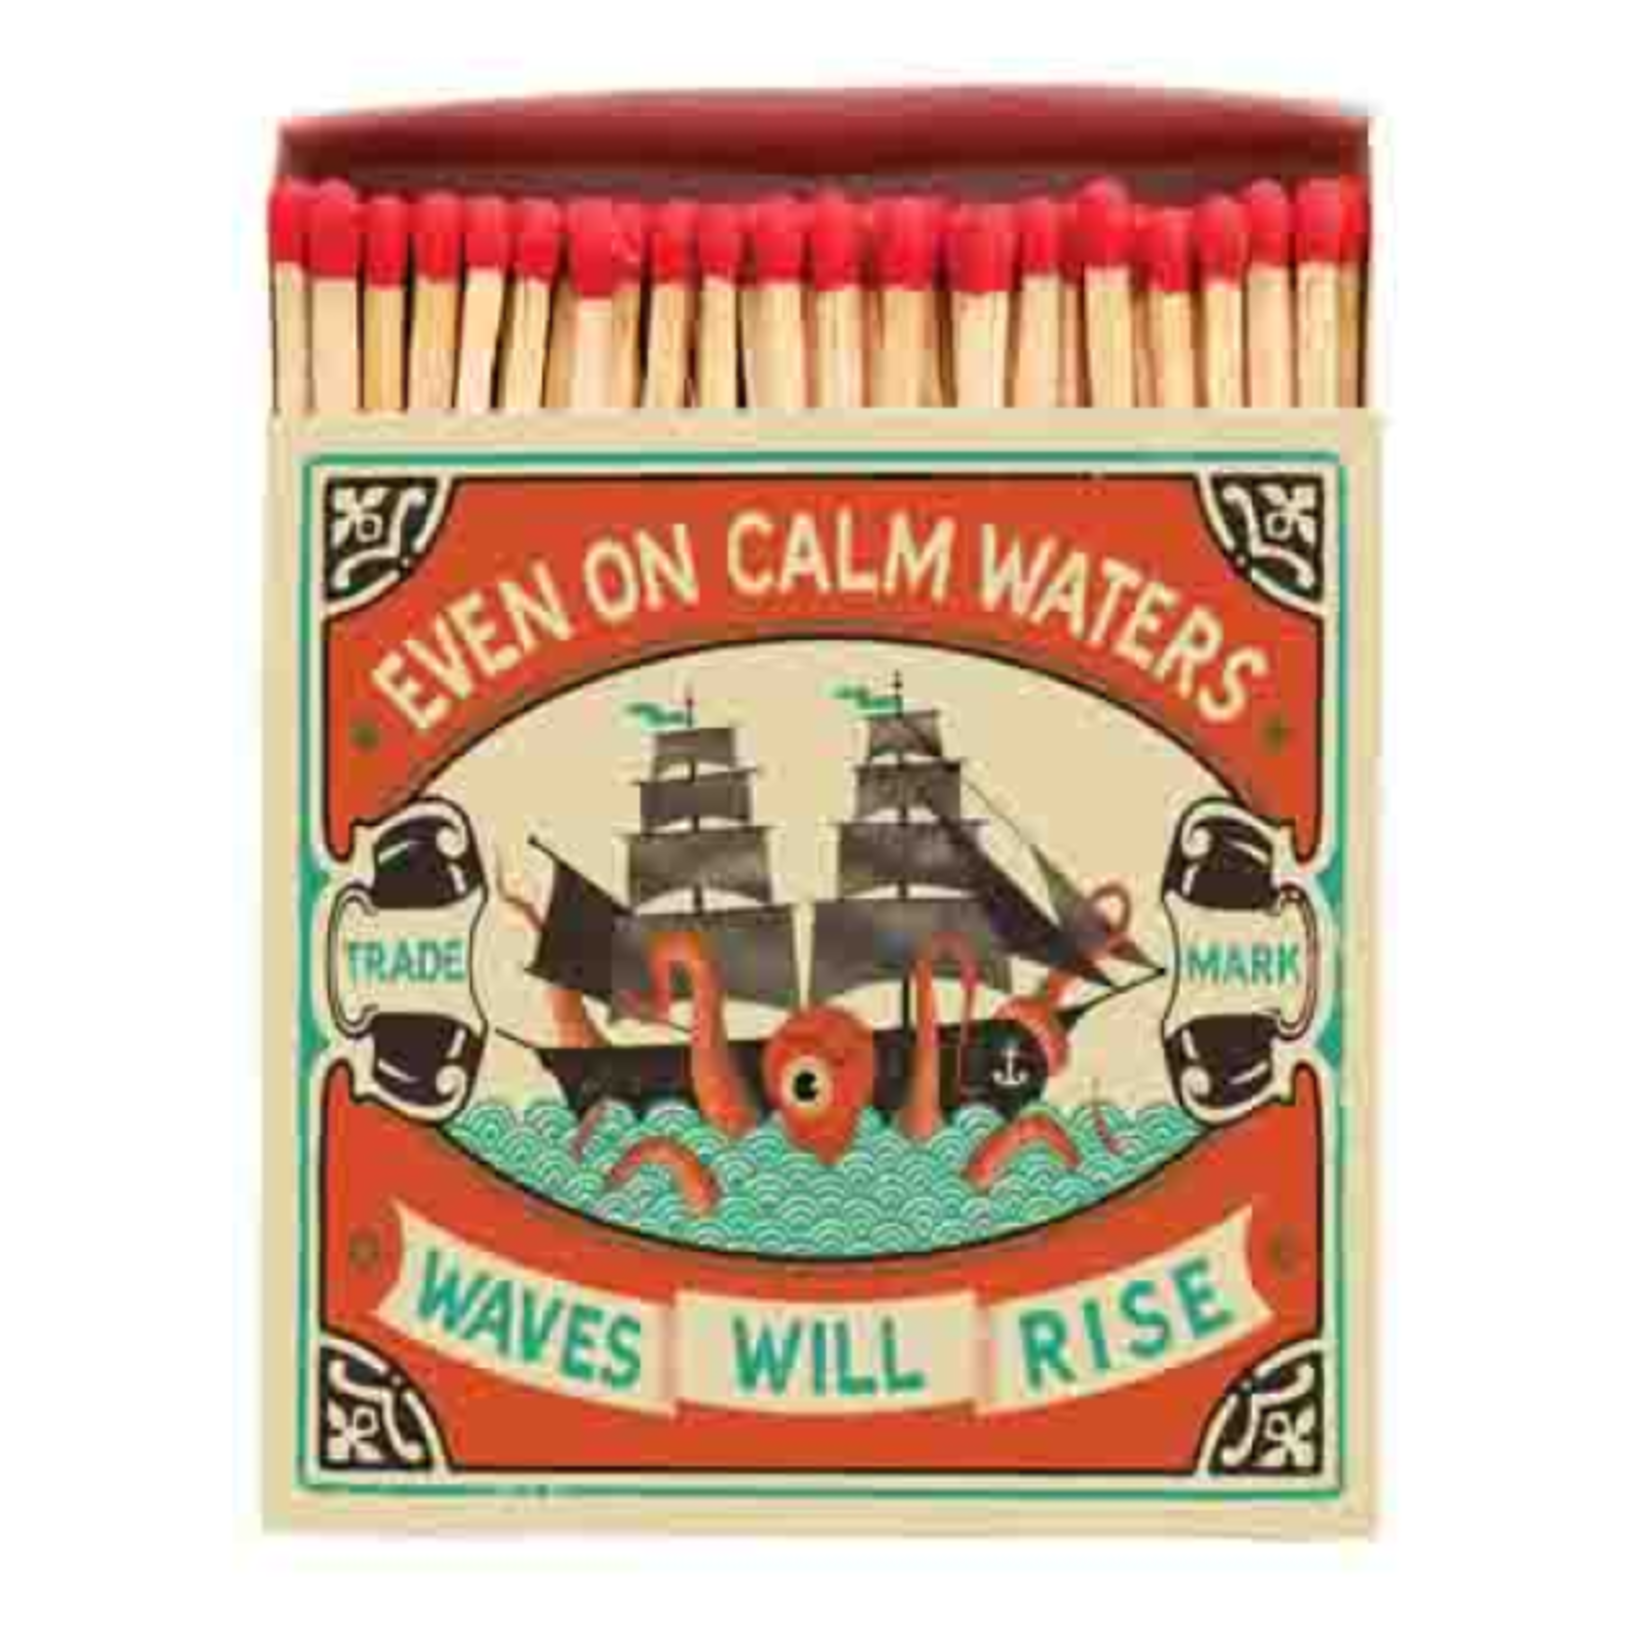 Saftey Matches Even on Calm Waters